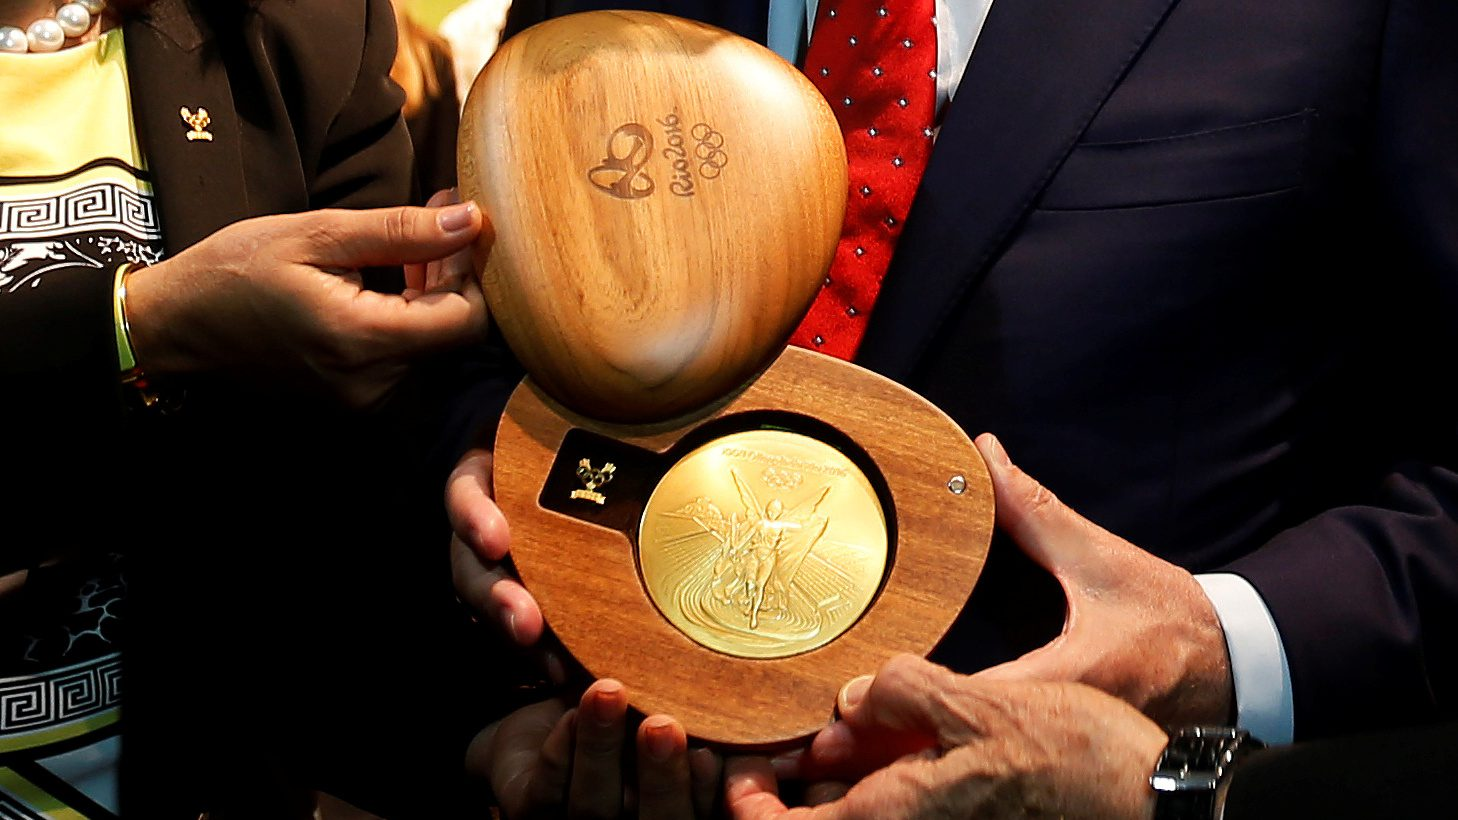 The medals will be presented in a sustainably sourced wooden box. (Reuters/Sergio Moraes)